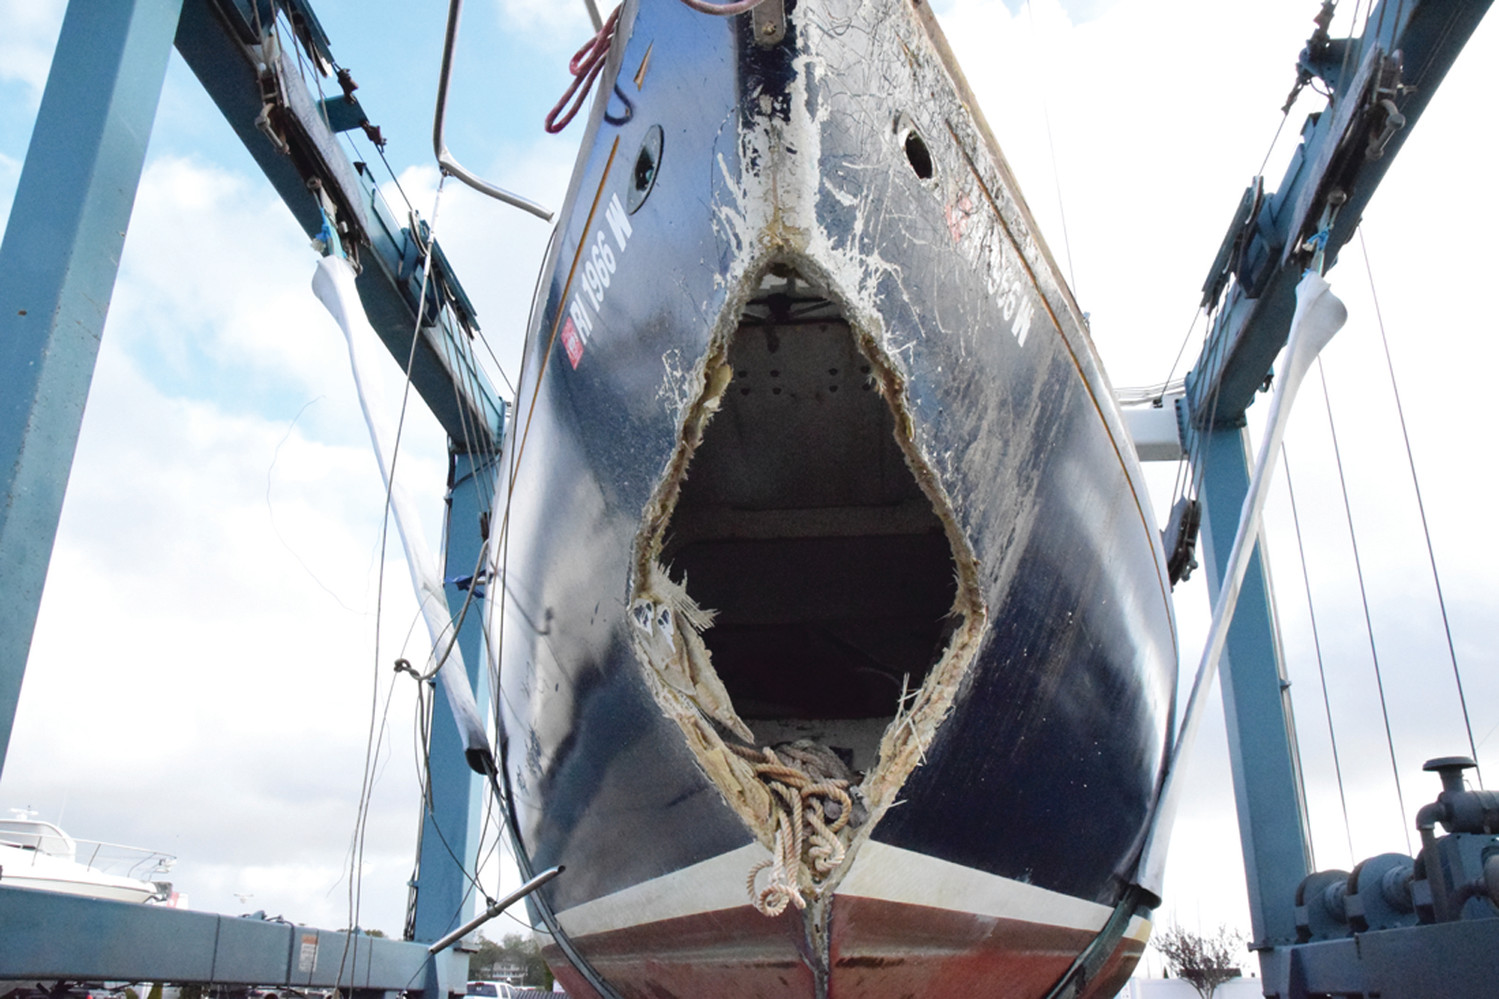 SEASIDE SHOCK: A sailboat at Greenwich Bay Marina gives an almost shocked appearance after suffering a collision with something else in the bay. The impact resulted in catastrophic damage to the bow.